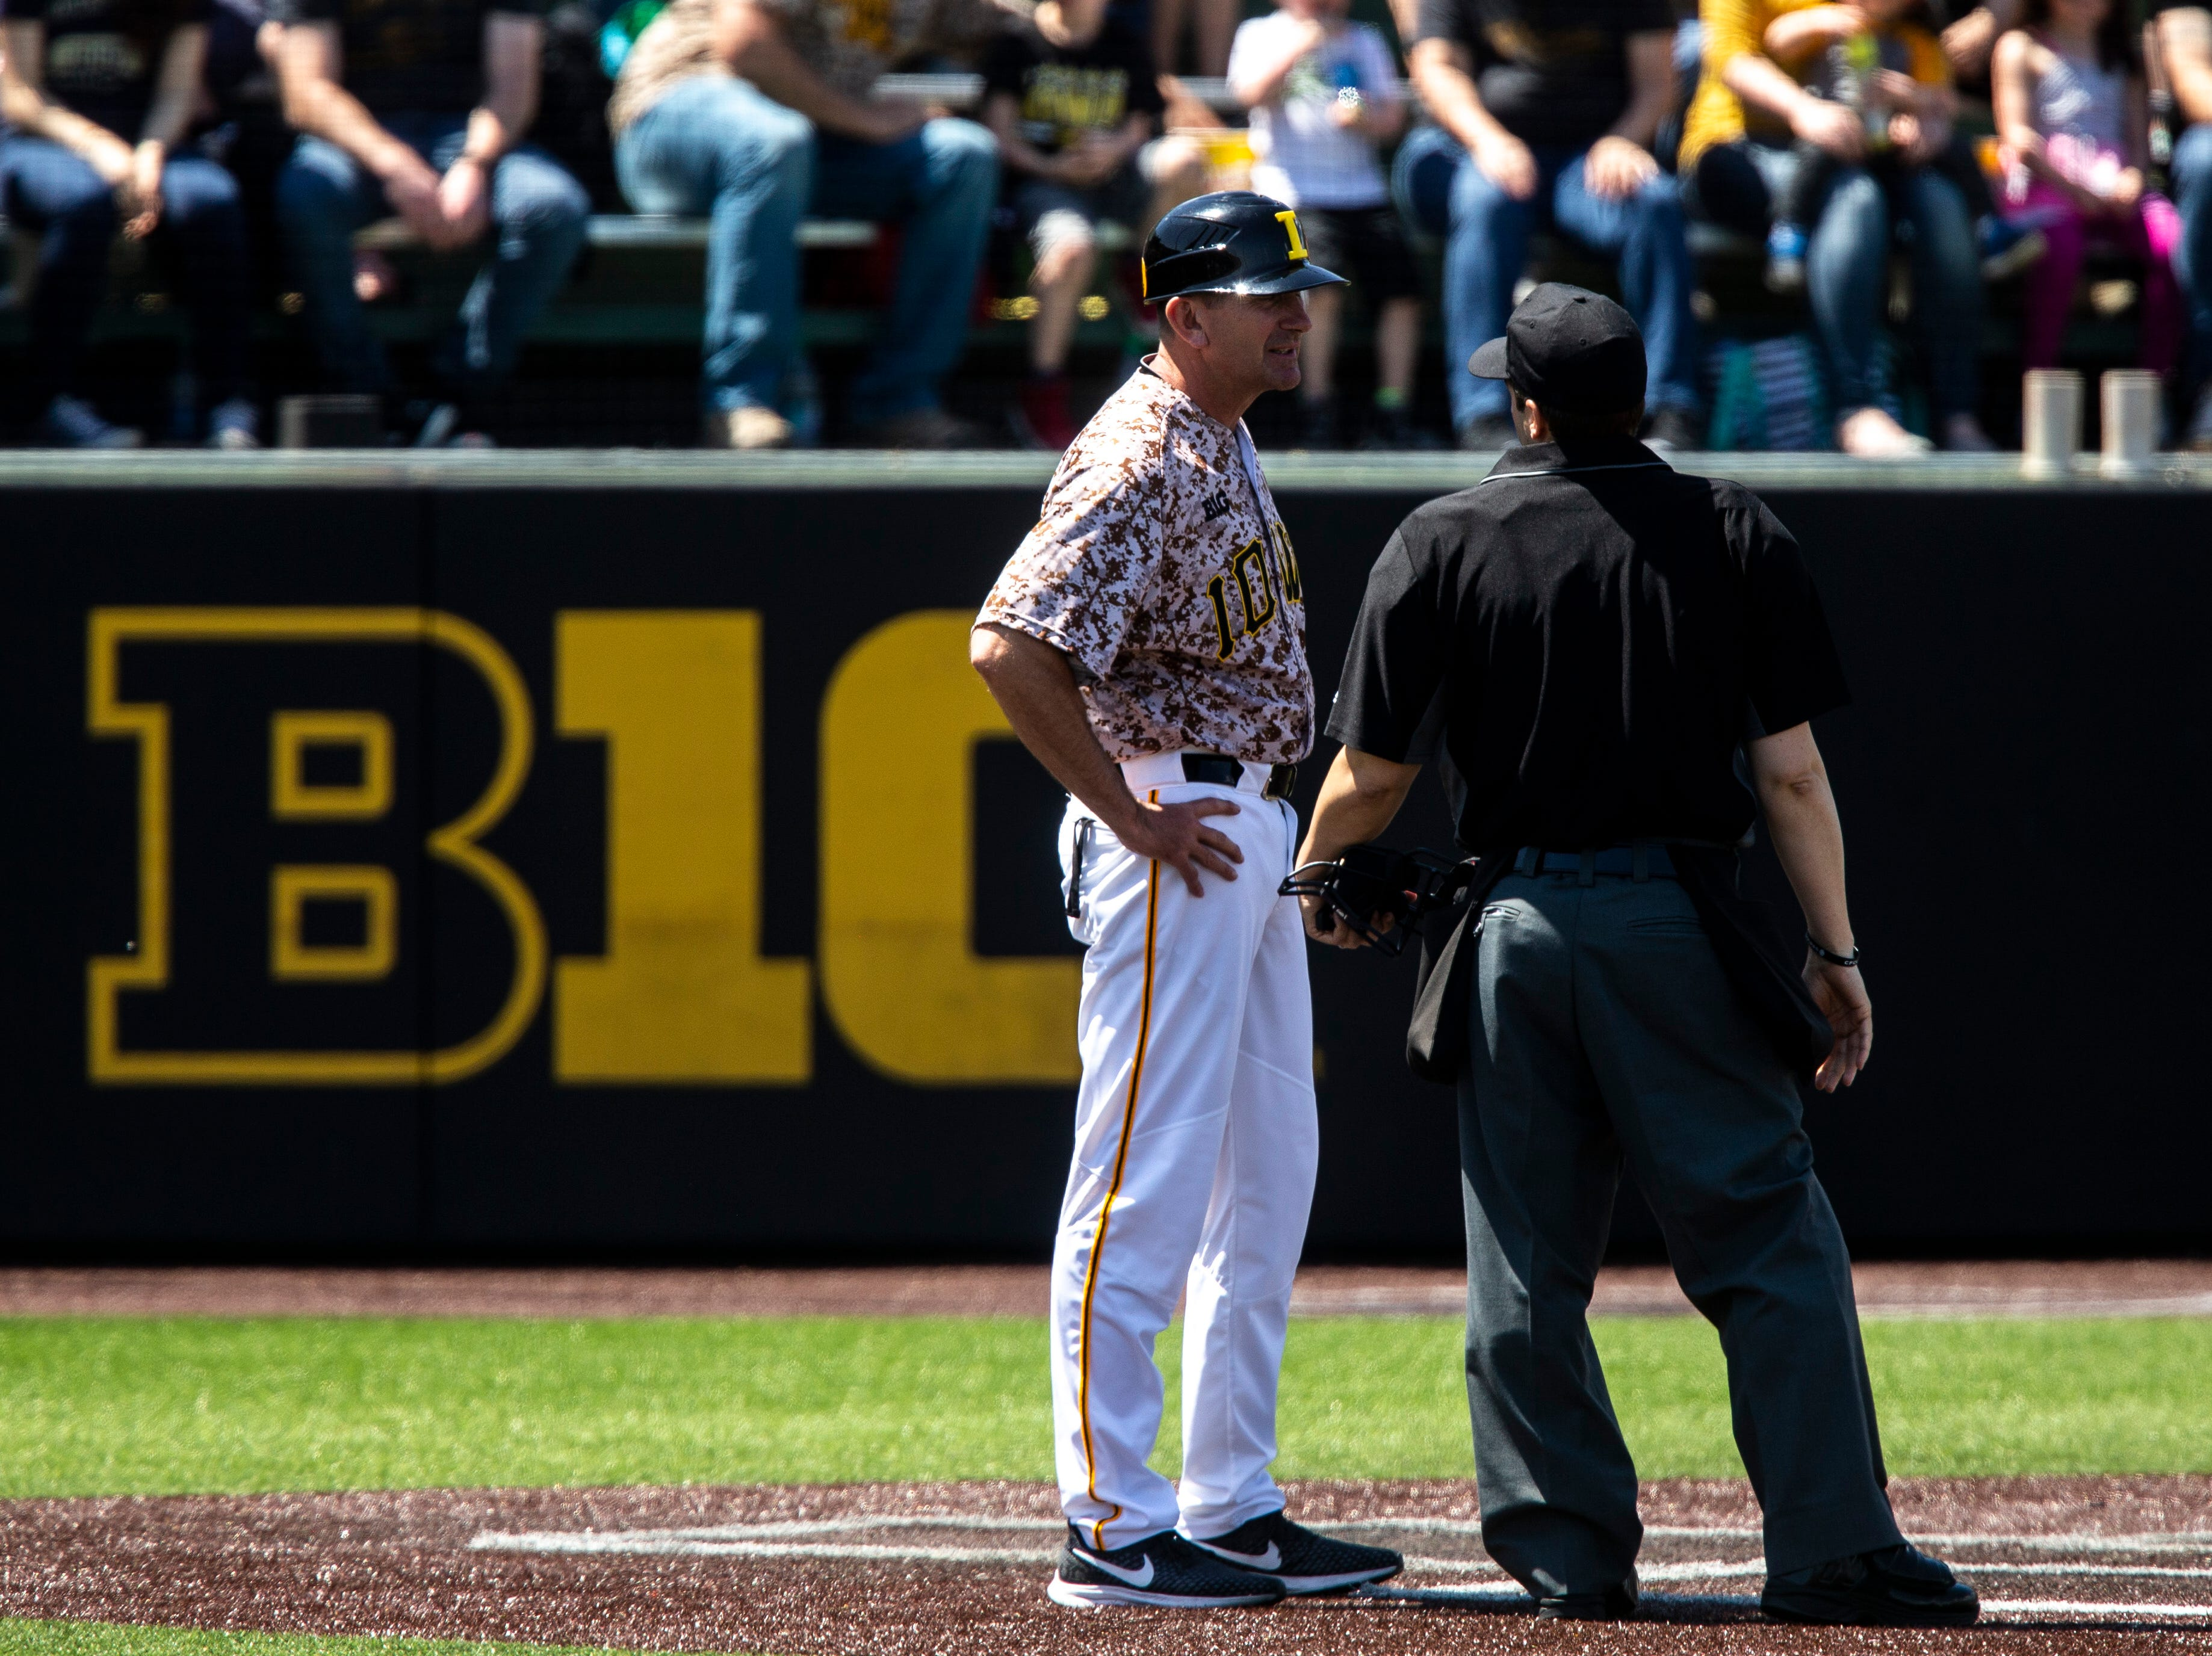 Iowa head coach Rick Heller talks with the home plate umprie during a NCAA non conference baseball game, Sunday, May 5, 2019, at Duane Banks Field in Iowa City, Iowa.